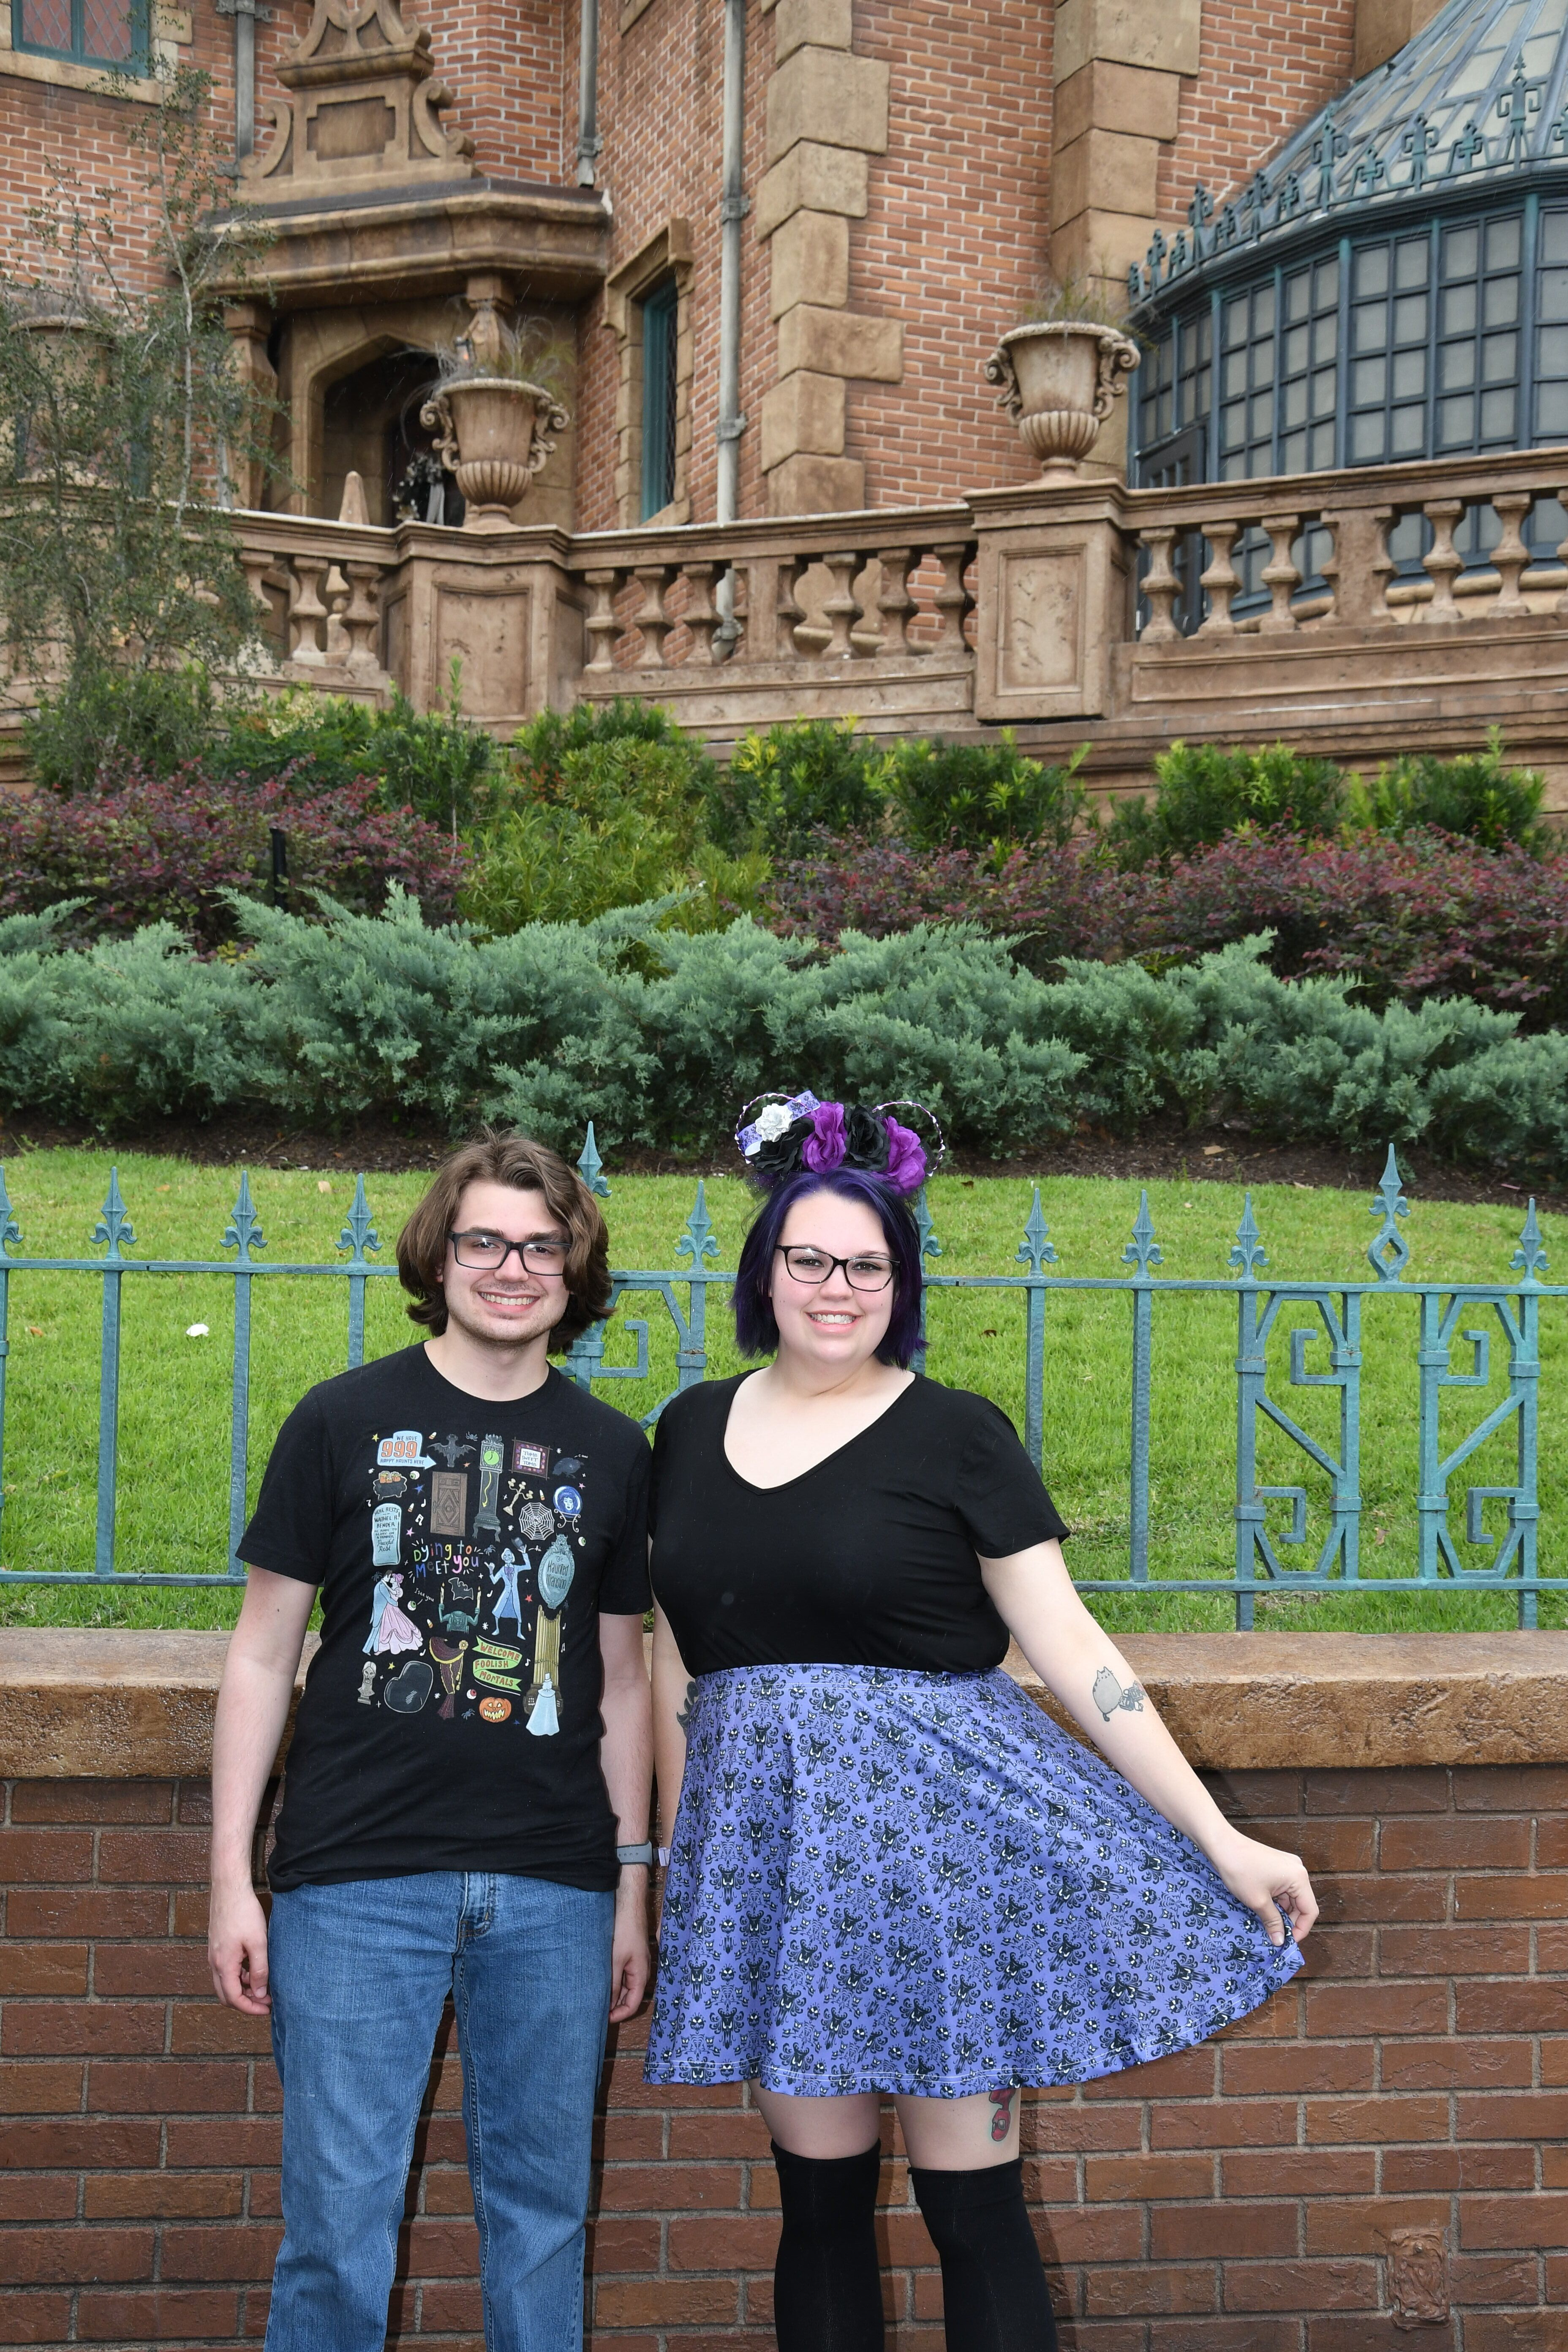 Image 1 of Angela Celeste and Andrew